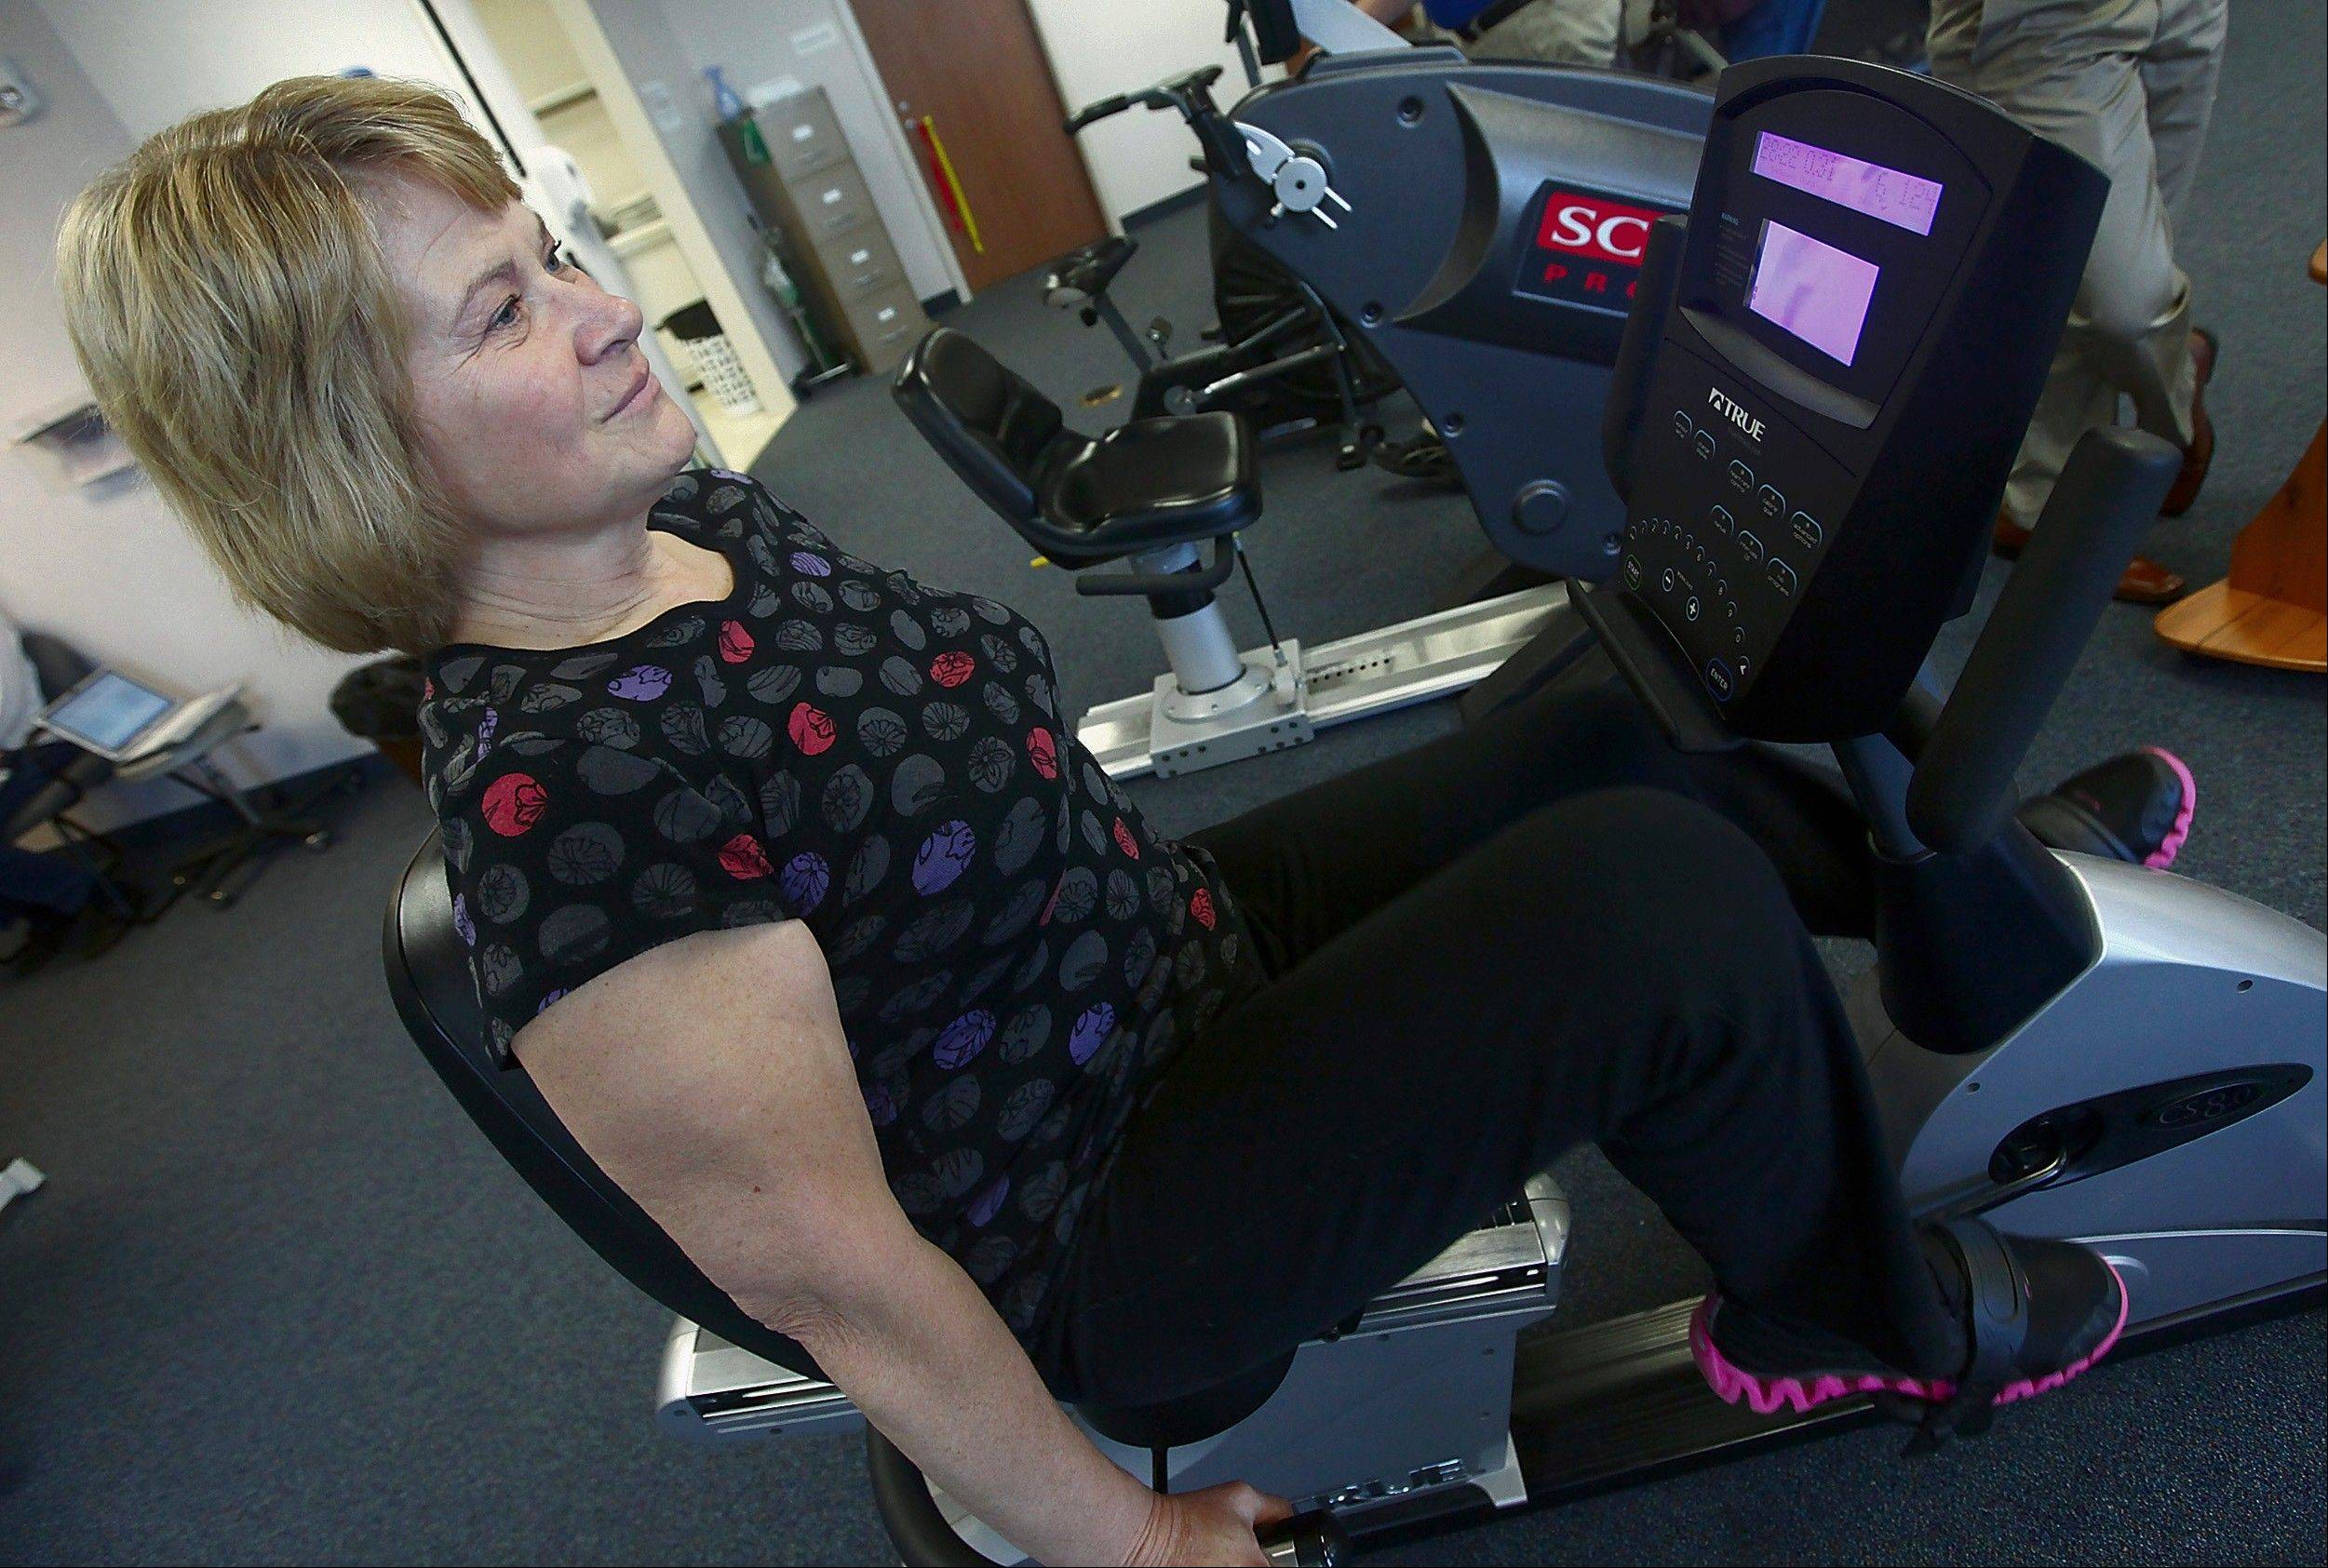 Postal carrier Nadine O�Brien, 52, who had both knees replaced six weeks ago, works out at Quincy Medical Group trying to rehab her knees to get back to her walking route with the postal service.